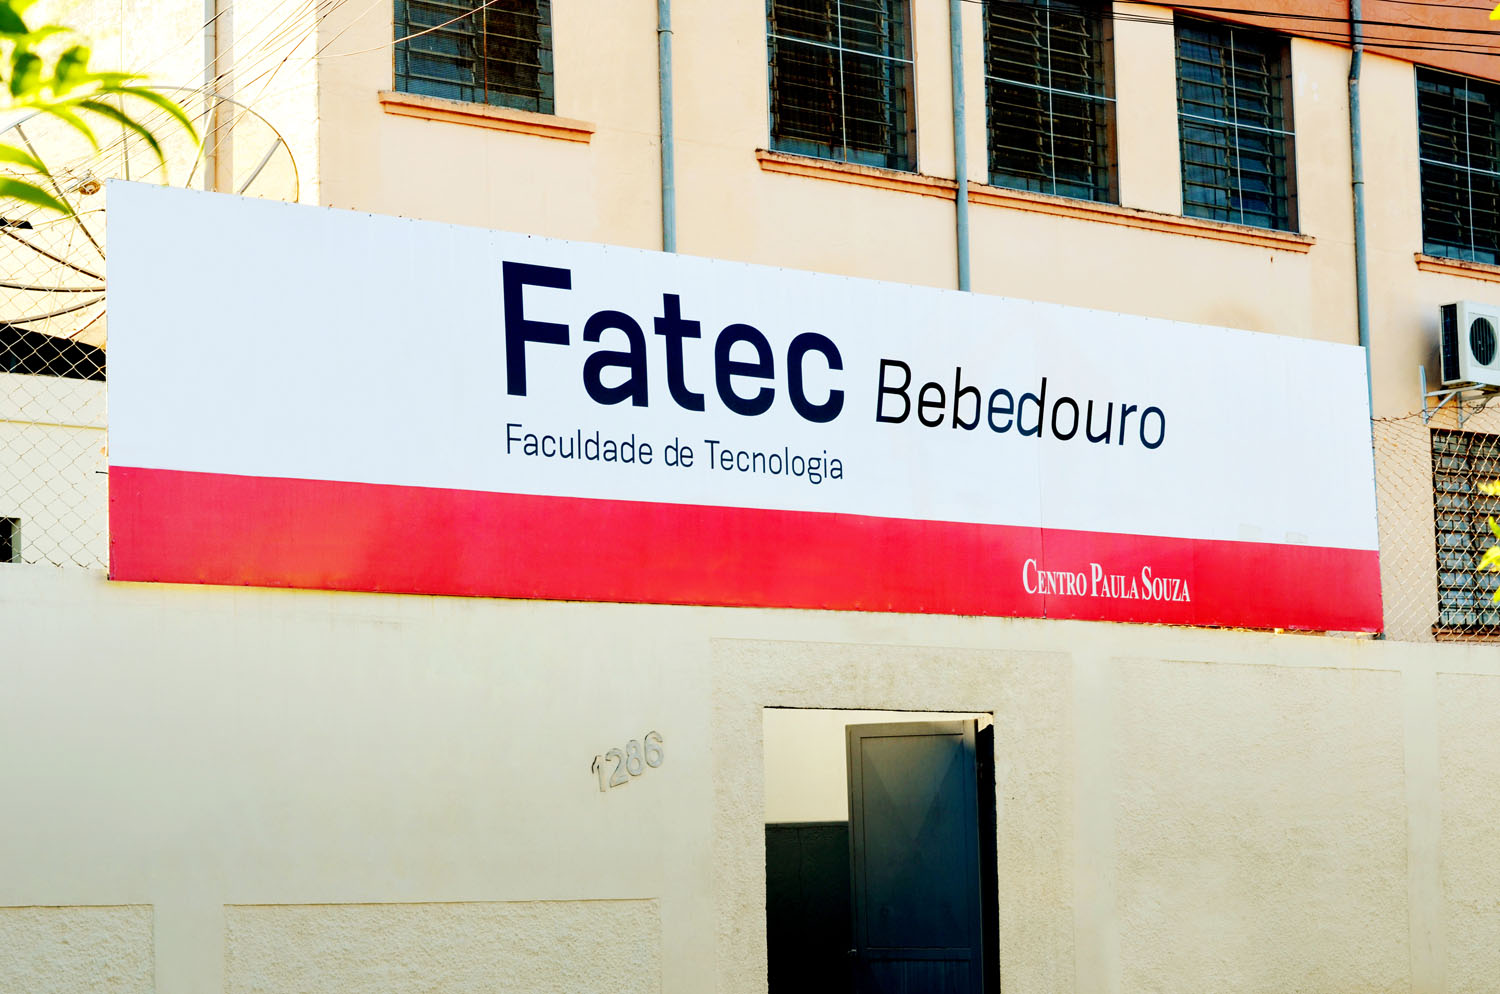 Foto do Campus da Fatec Bebedouro